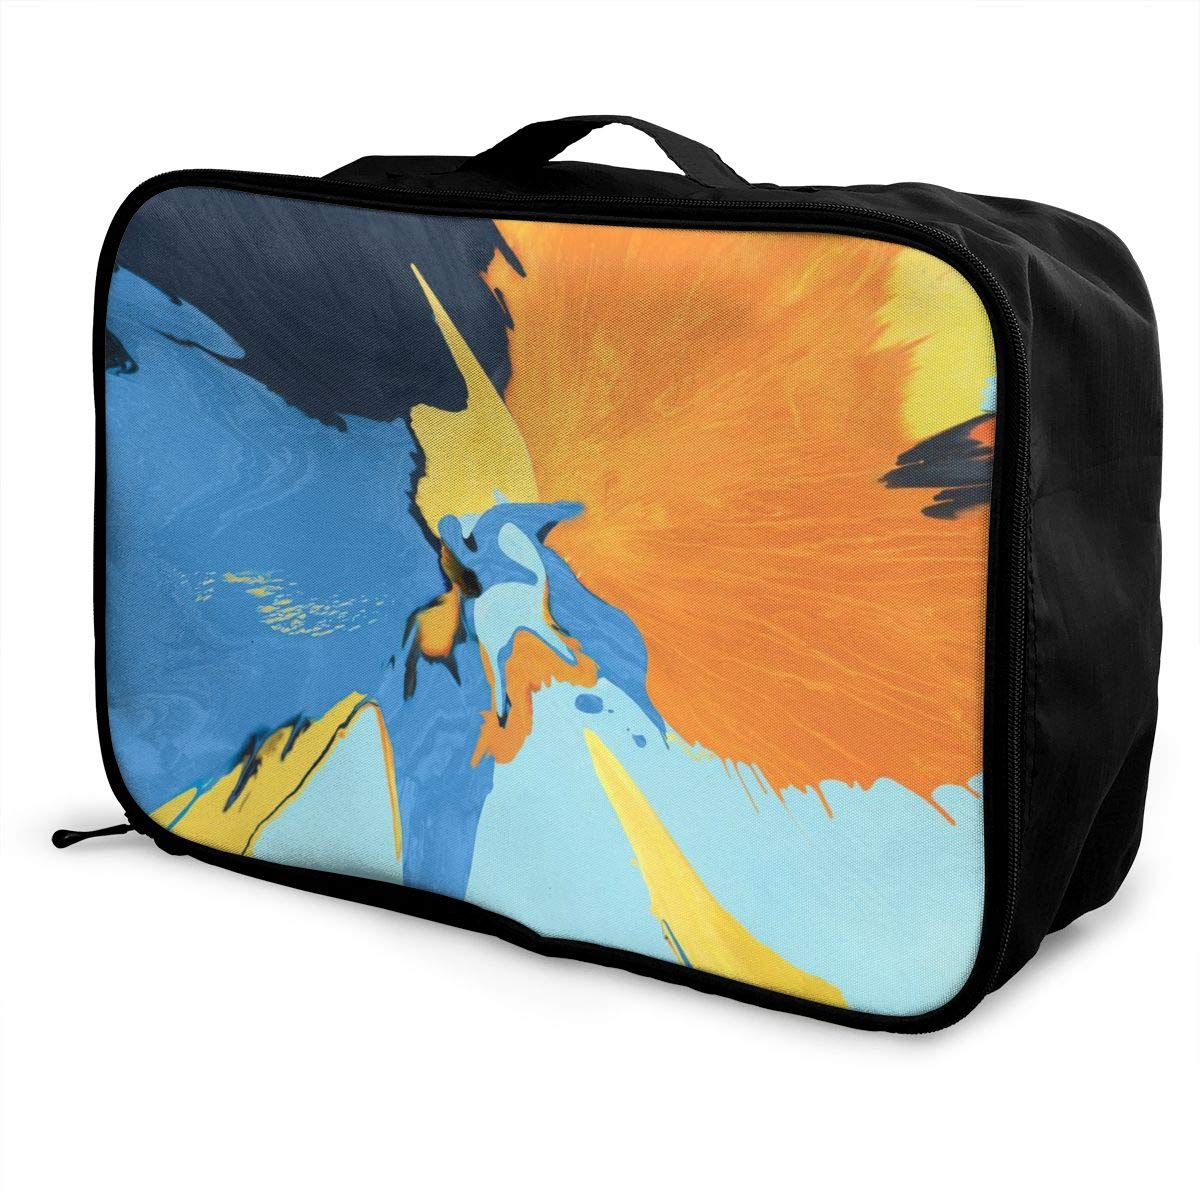 3D Colorful Paint Pigment Splash Travel Lightweight Waterproof Foldable Storage Carry Luggage Duffle Tote Bag Large Capacity In Trolley Handle Bags 6x11x15 Inch